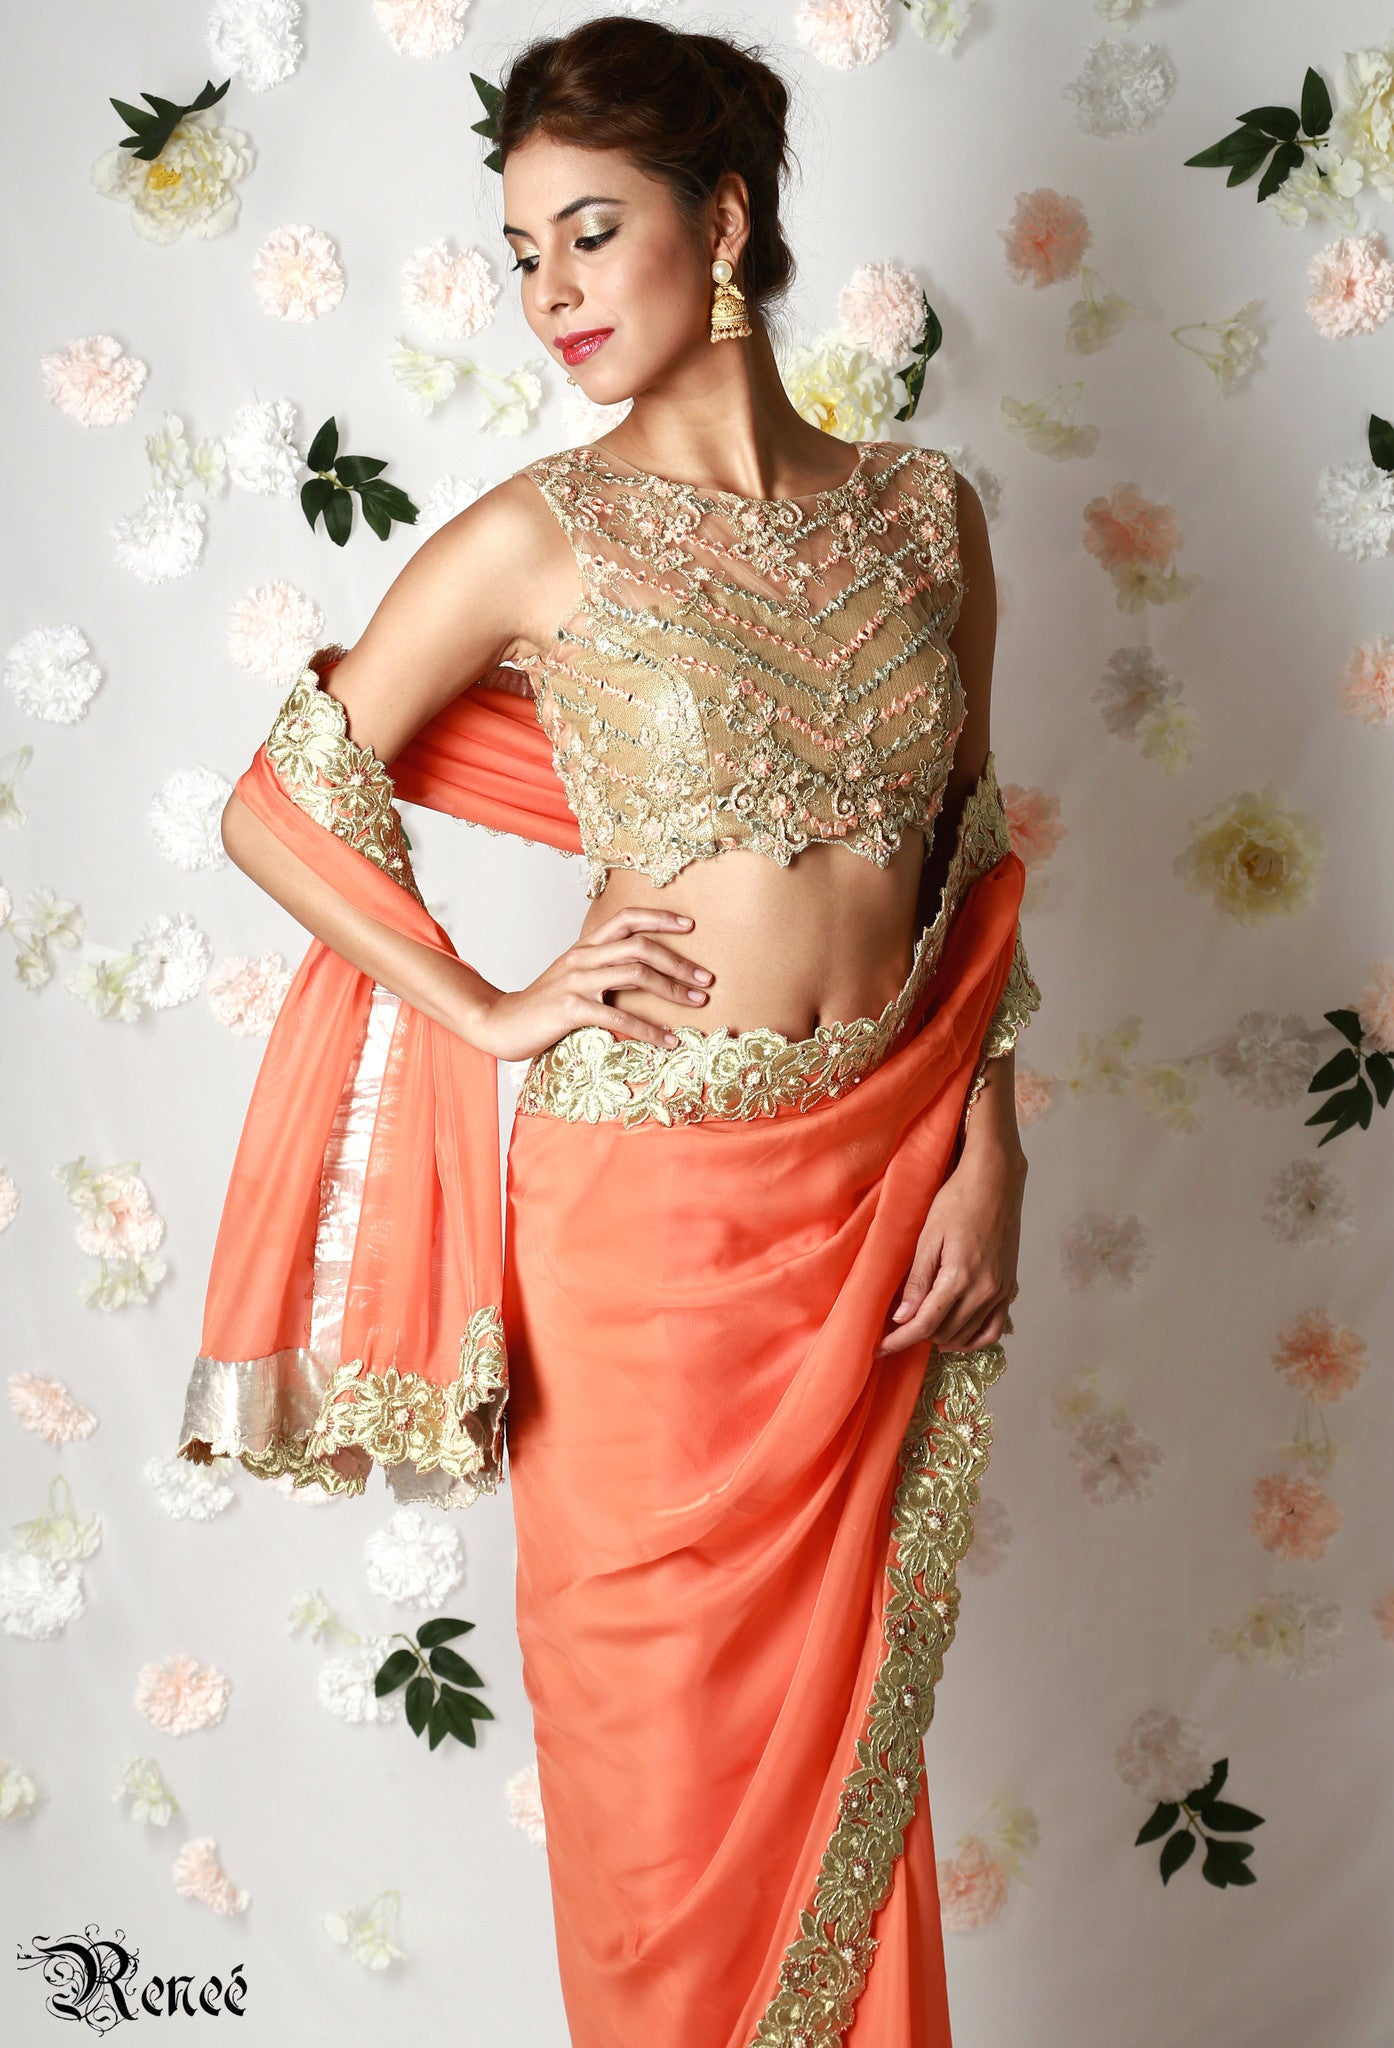 Tangerine Orange Gold Saree Close-Up